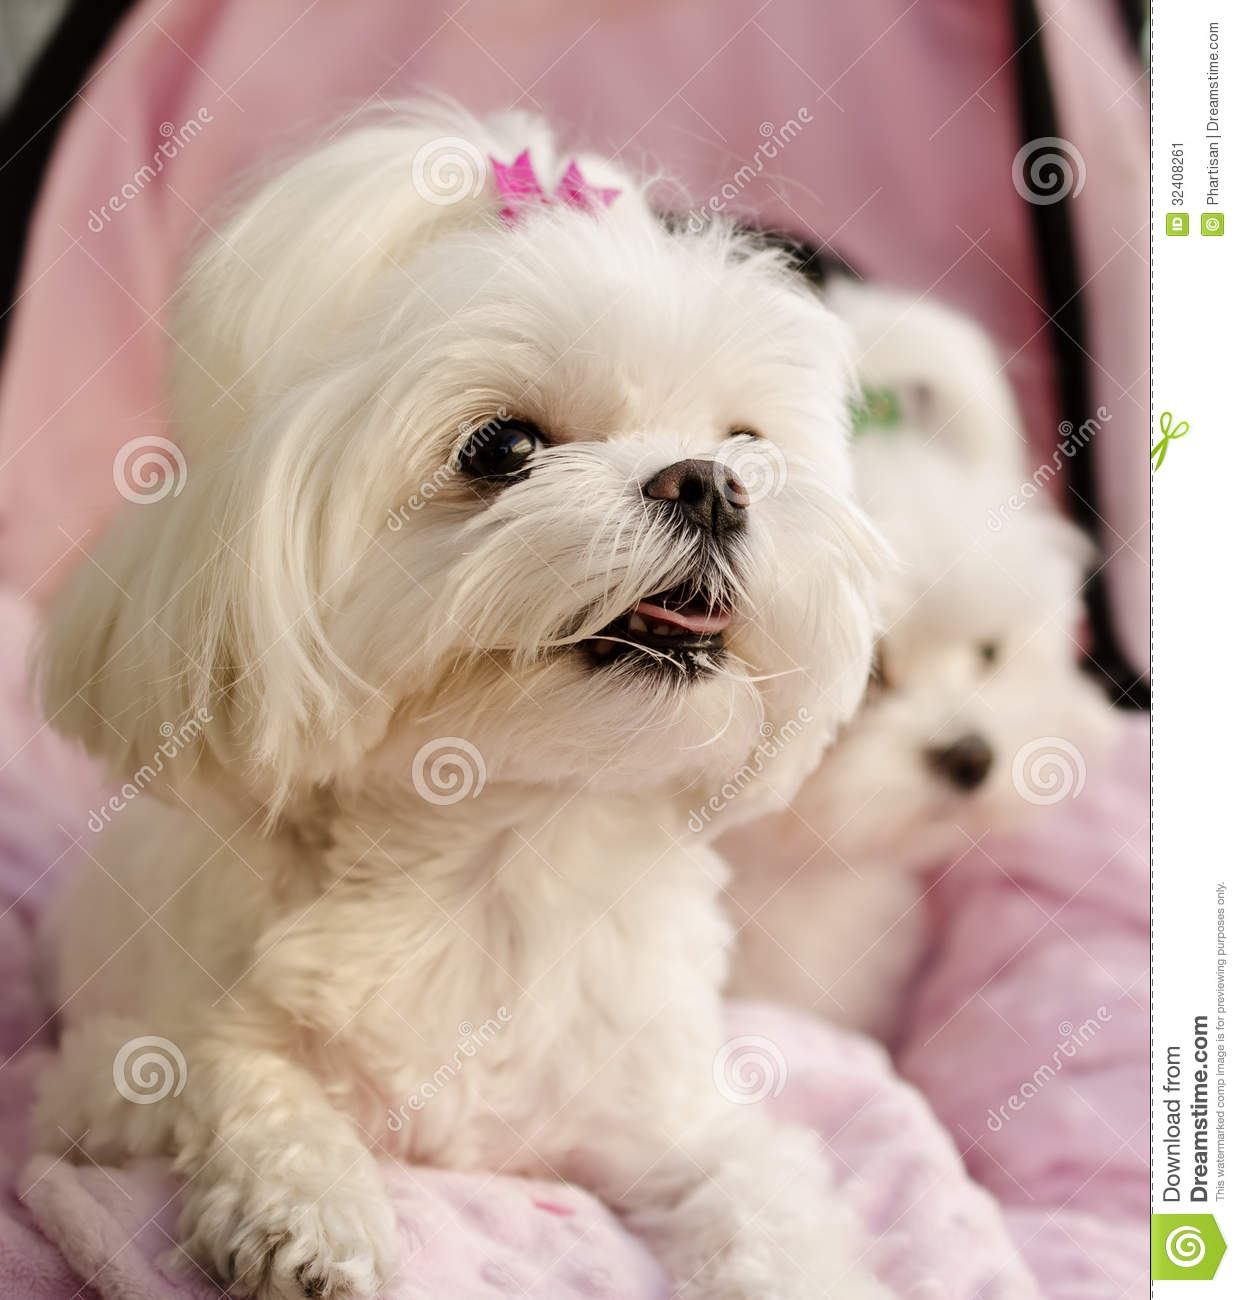 What does a maltese look like